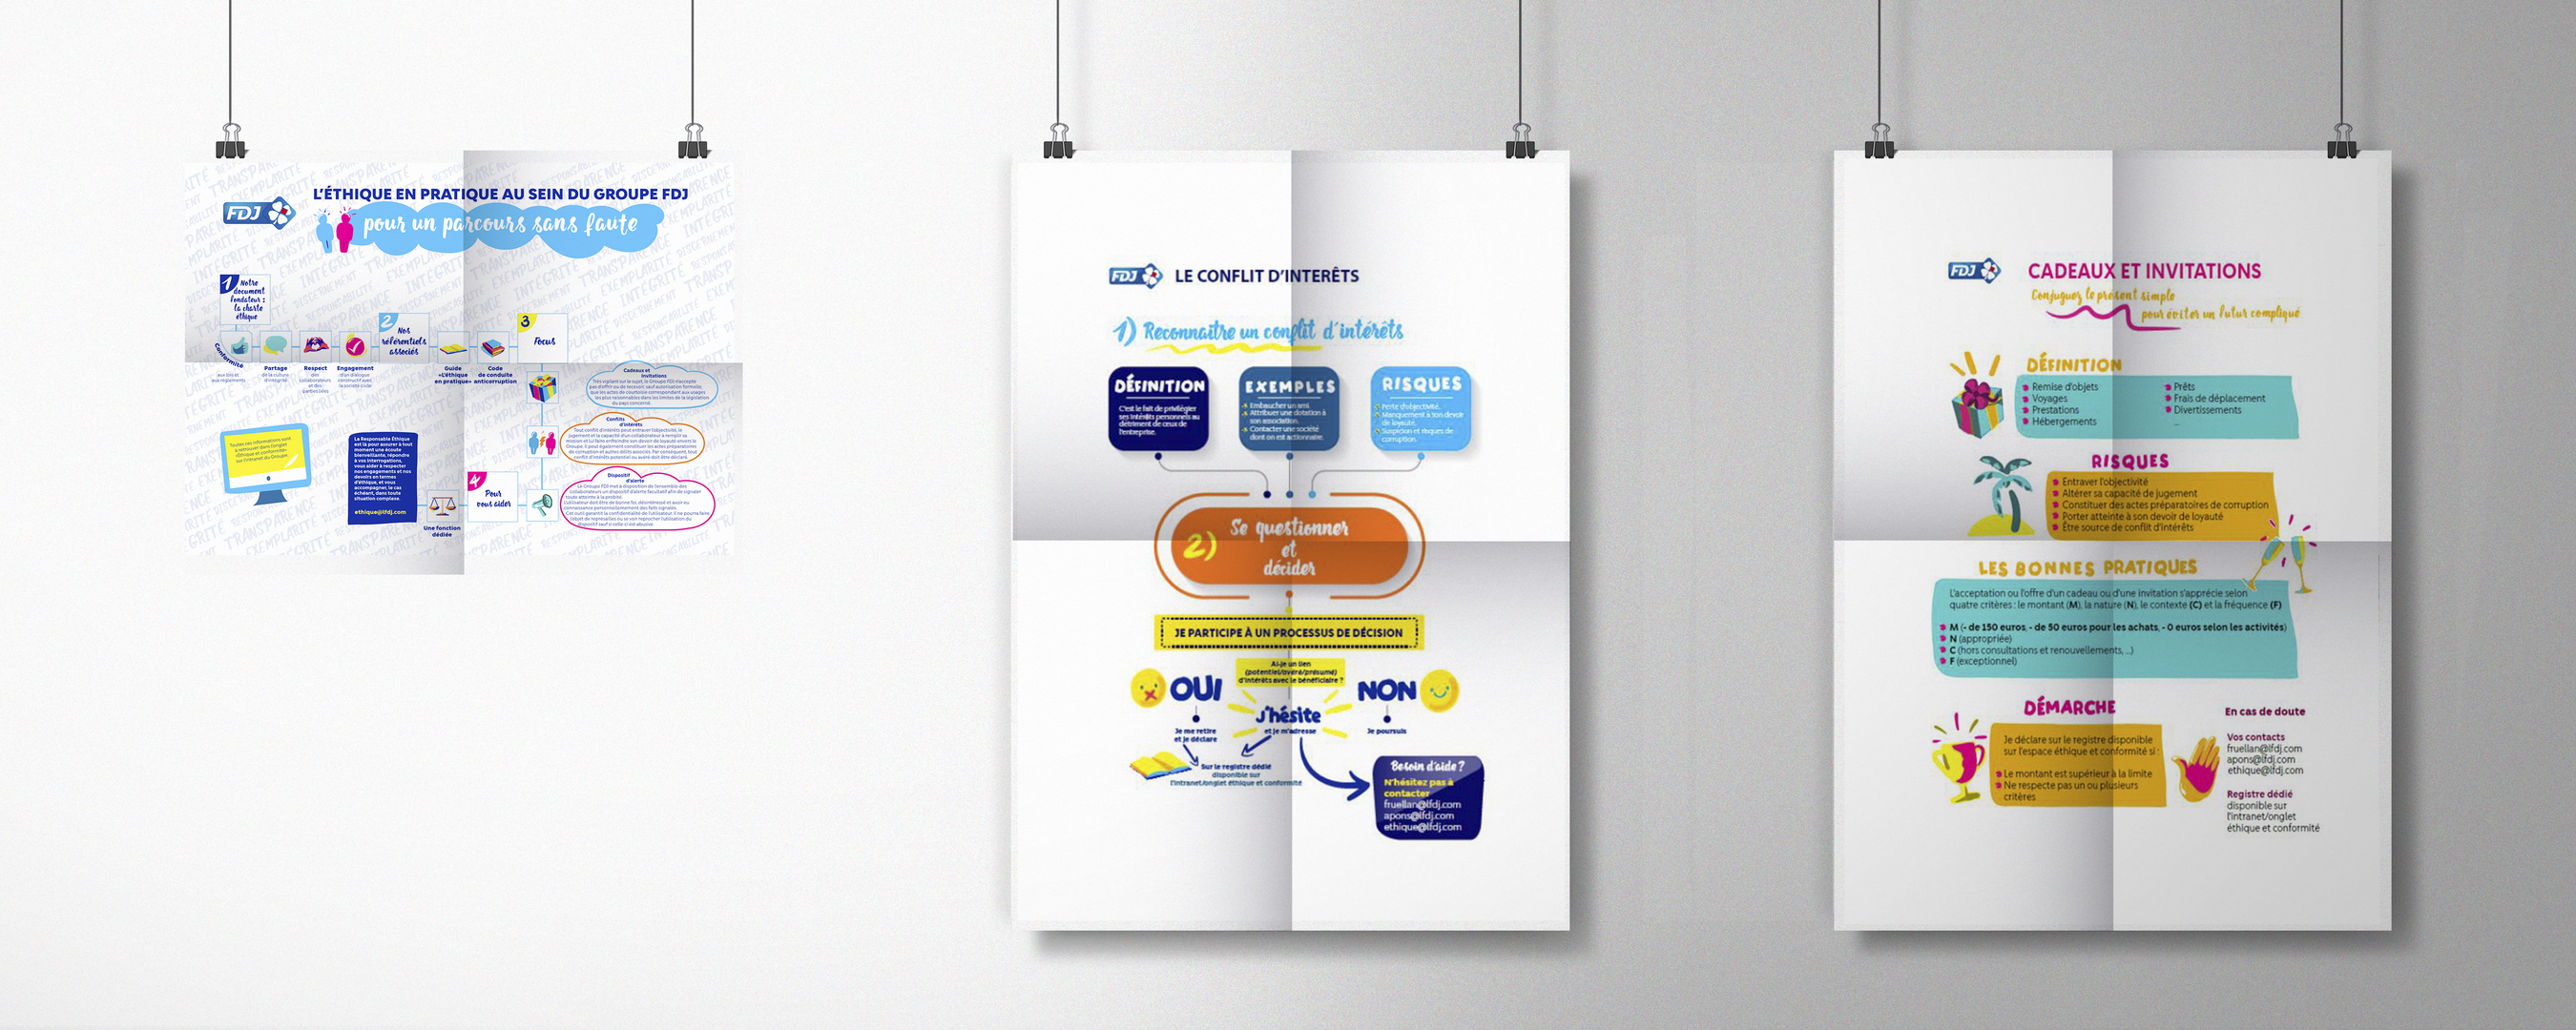 Infographies FDJ.png